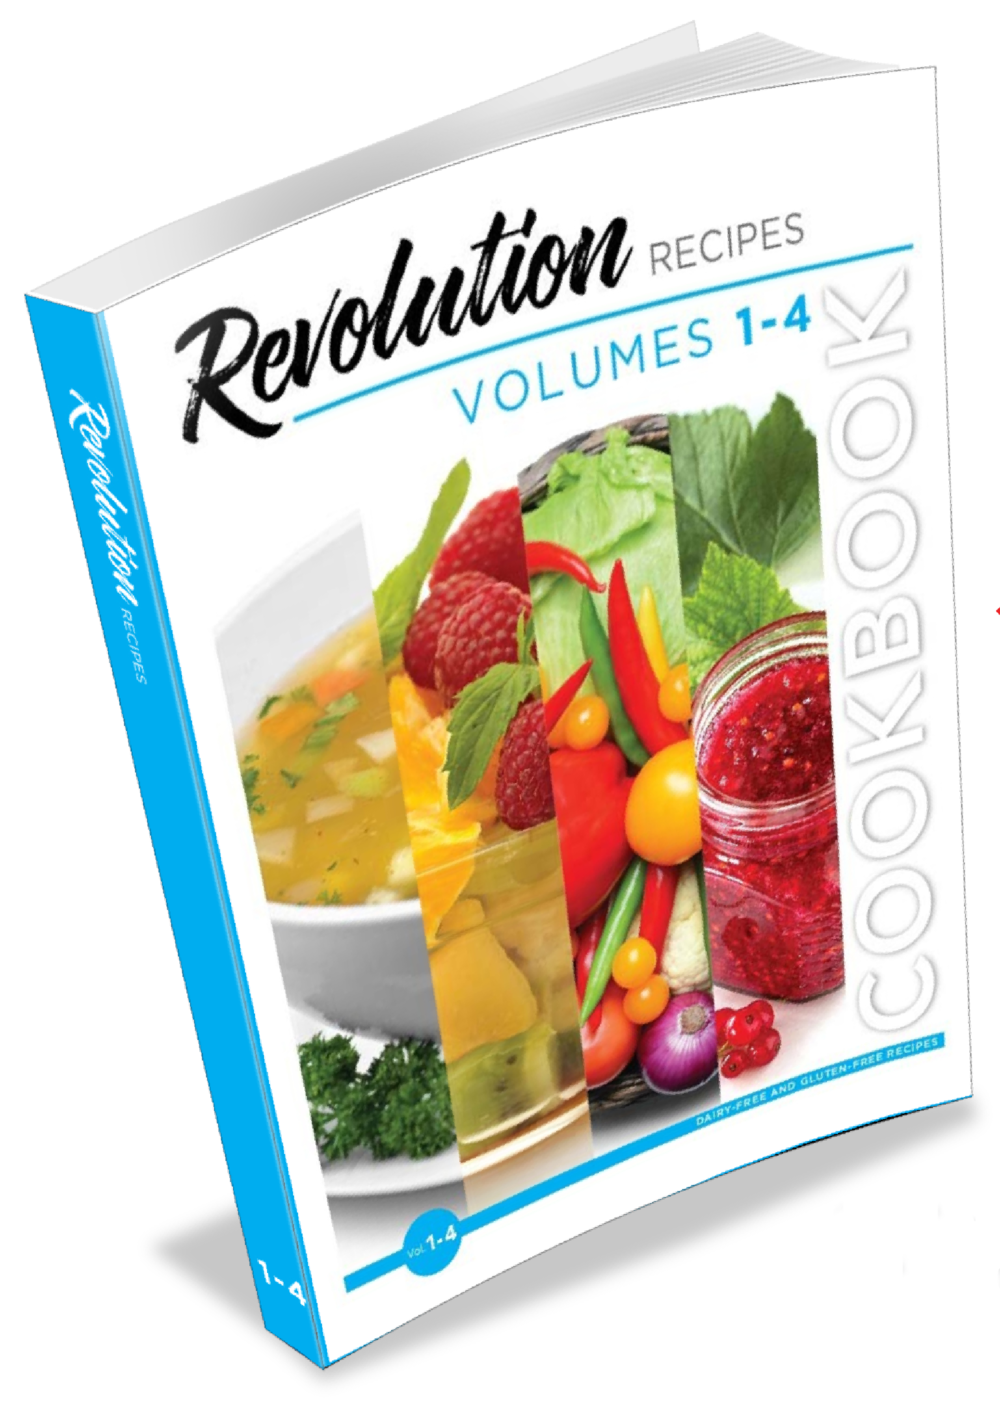 Revolution-Recipes-vol-1-4-cover-1.png